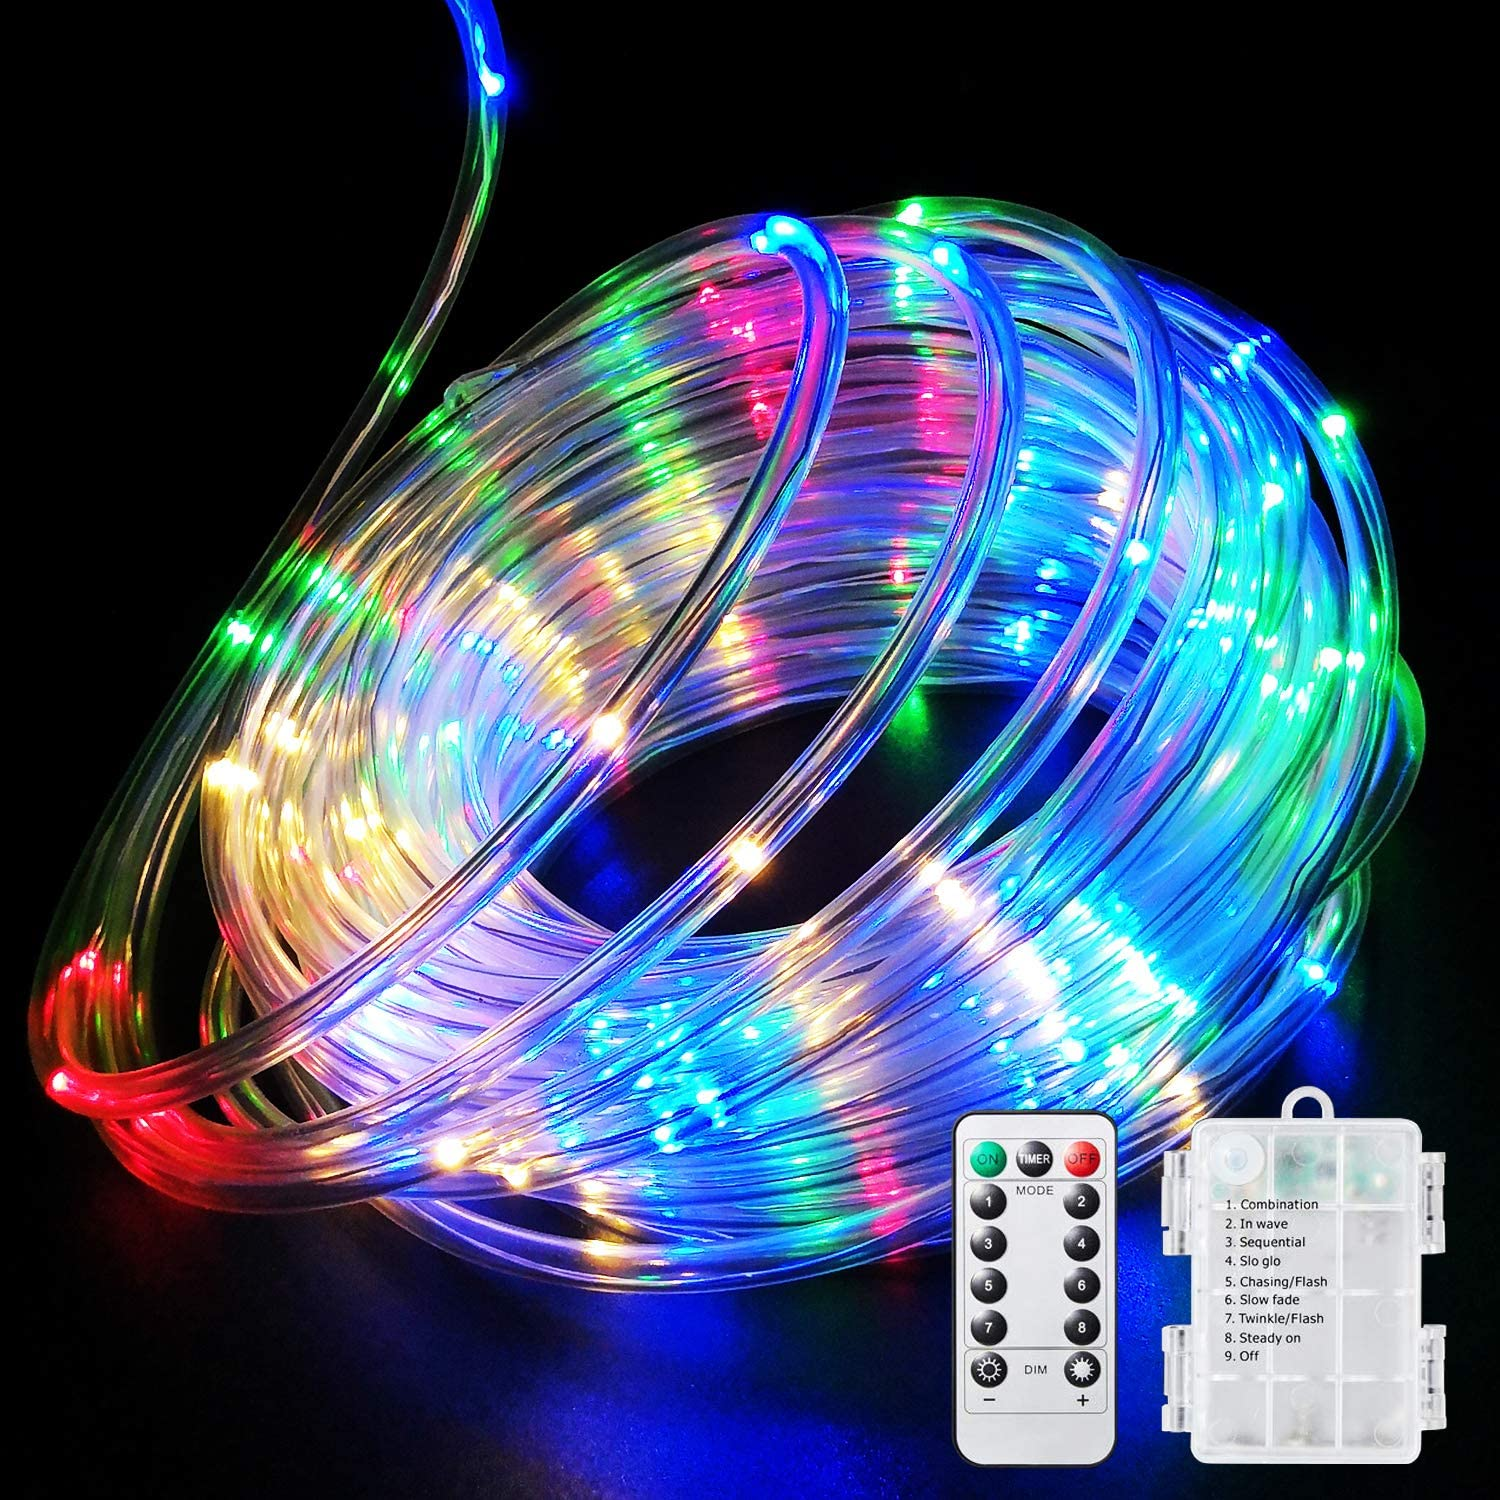 Fitybow 66Ft 200 LEDs Fairy String Lights Battery Operated Outdoor Waterproof 8 Modes Dimmable Remote Control Christmas Decor Lights Copper Wire Firefly Lights for Bedroom Party Patio Wedding